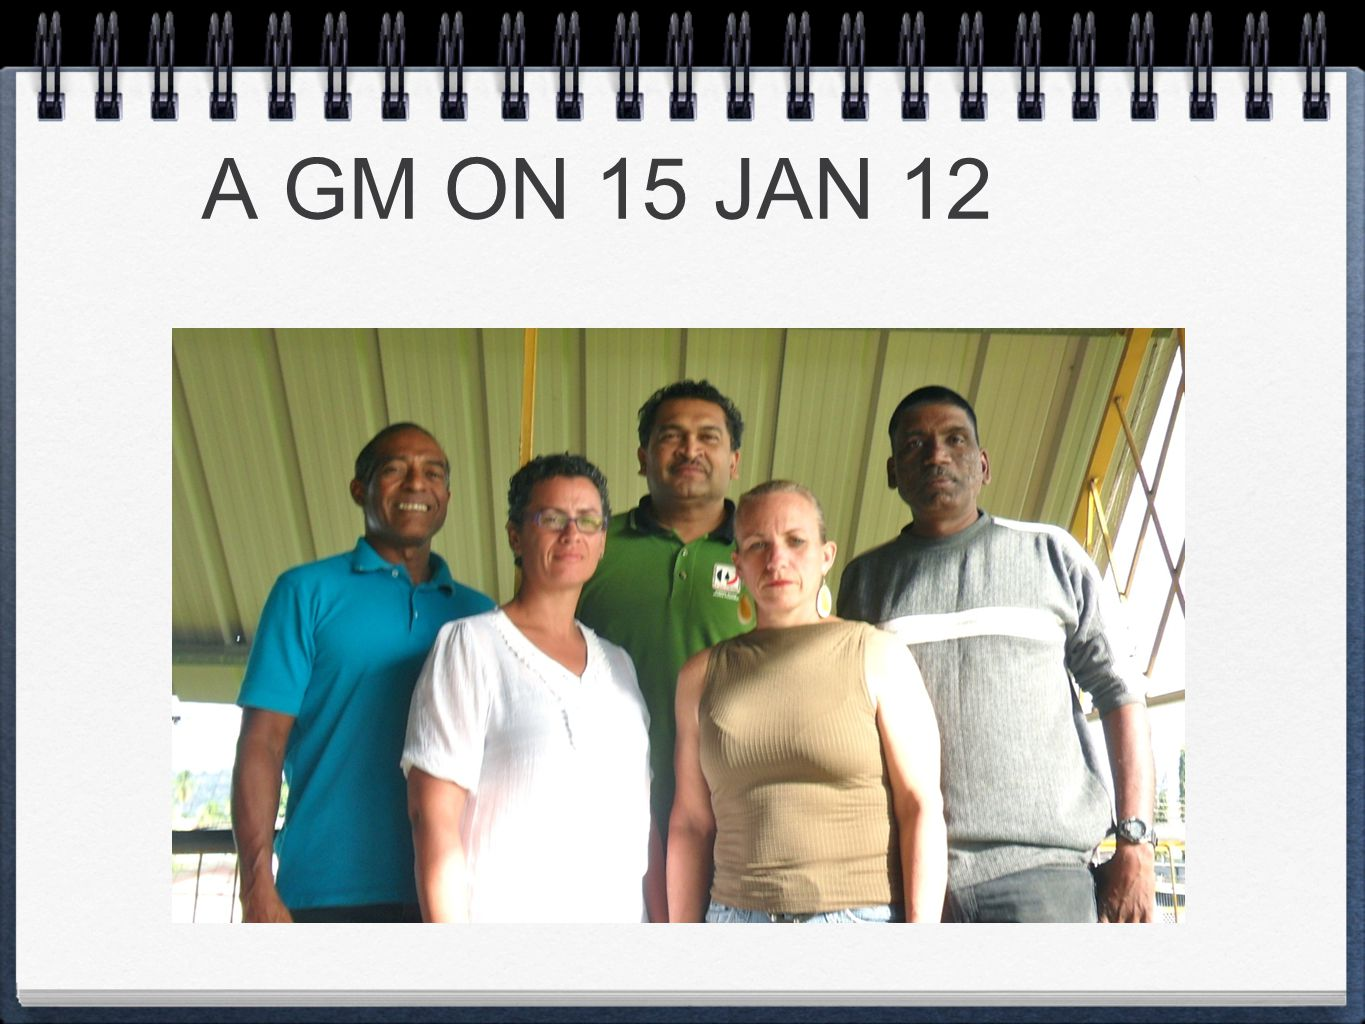 A GM ON 15 JAN 12